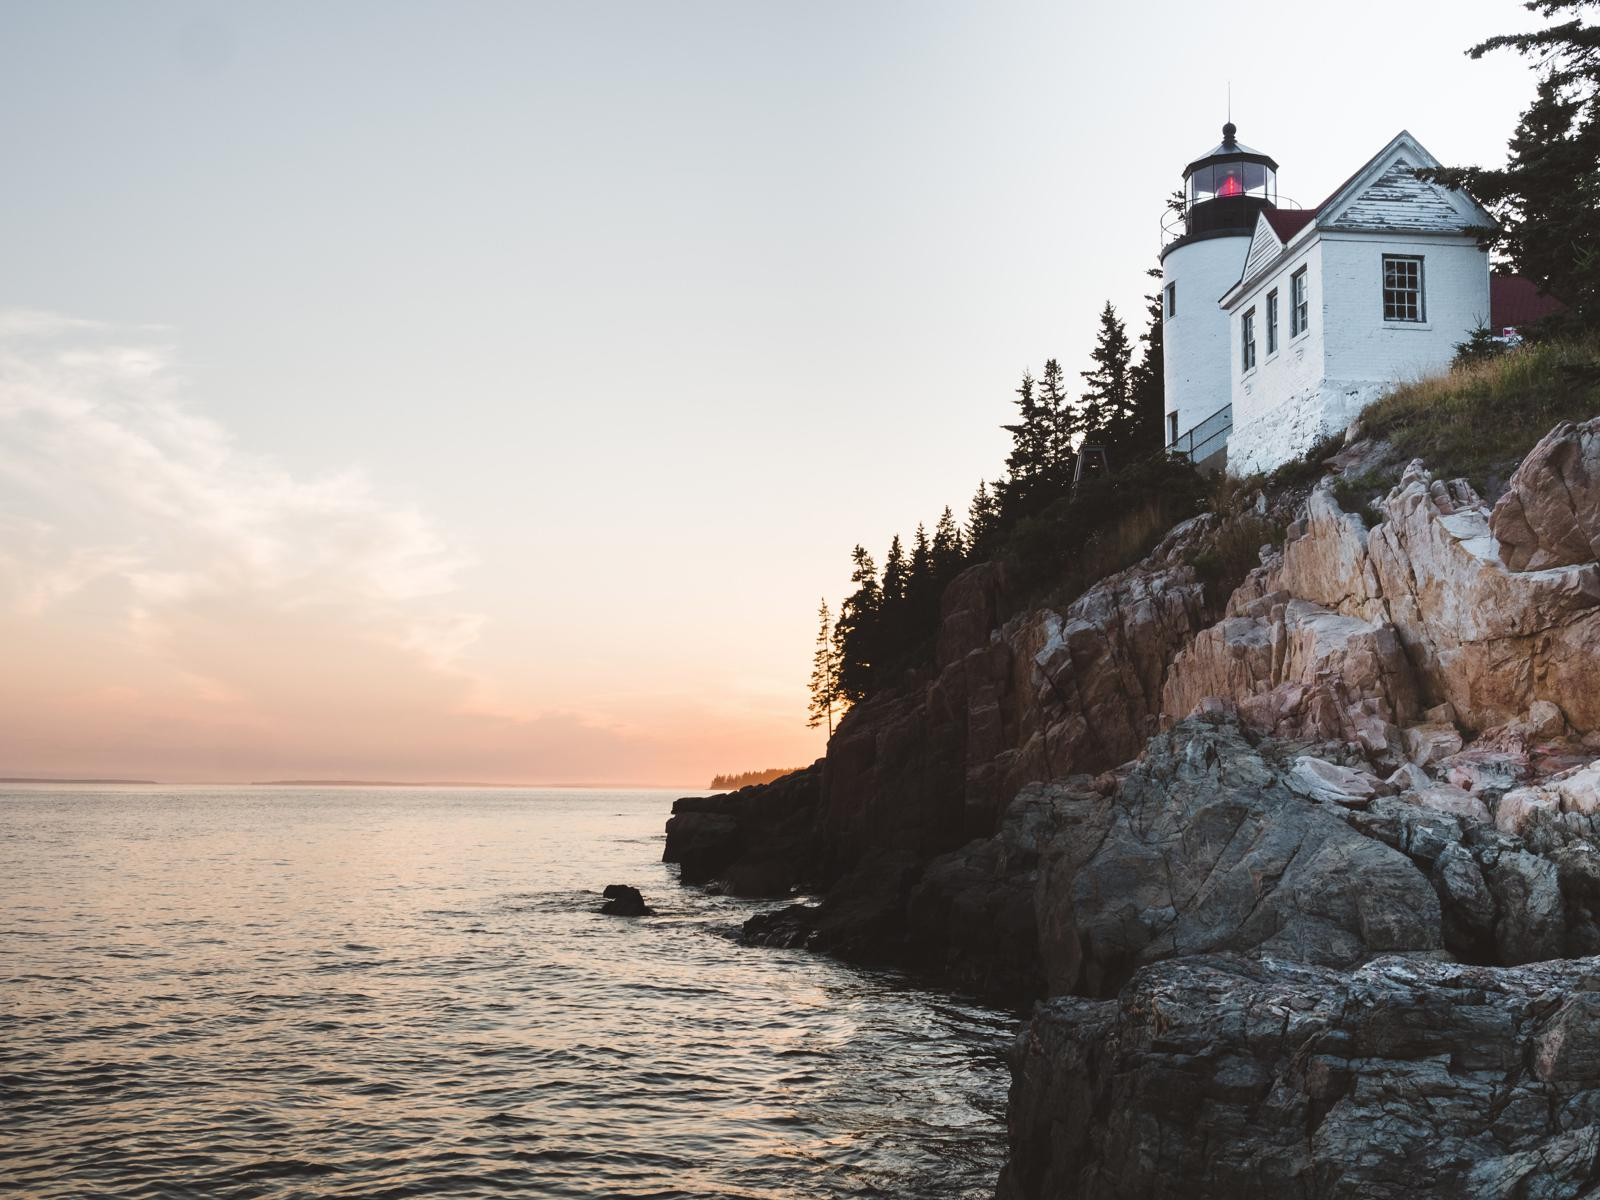 Bass Harbor, Tremont, Maine, United States